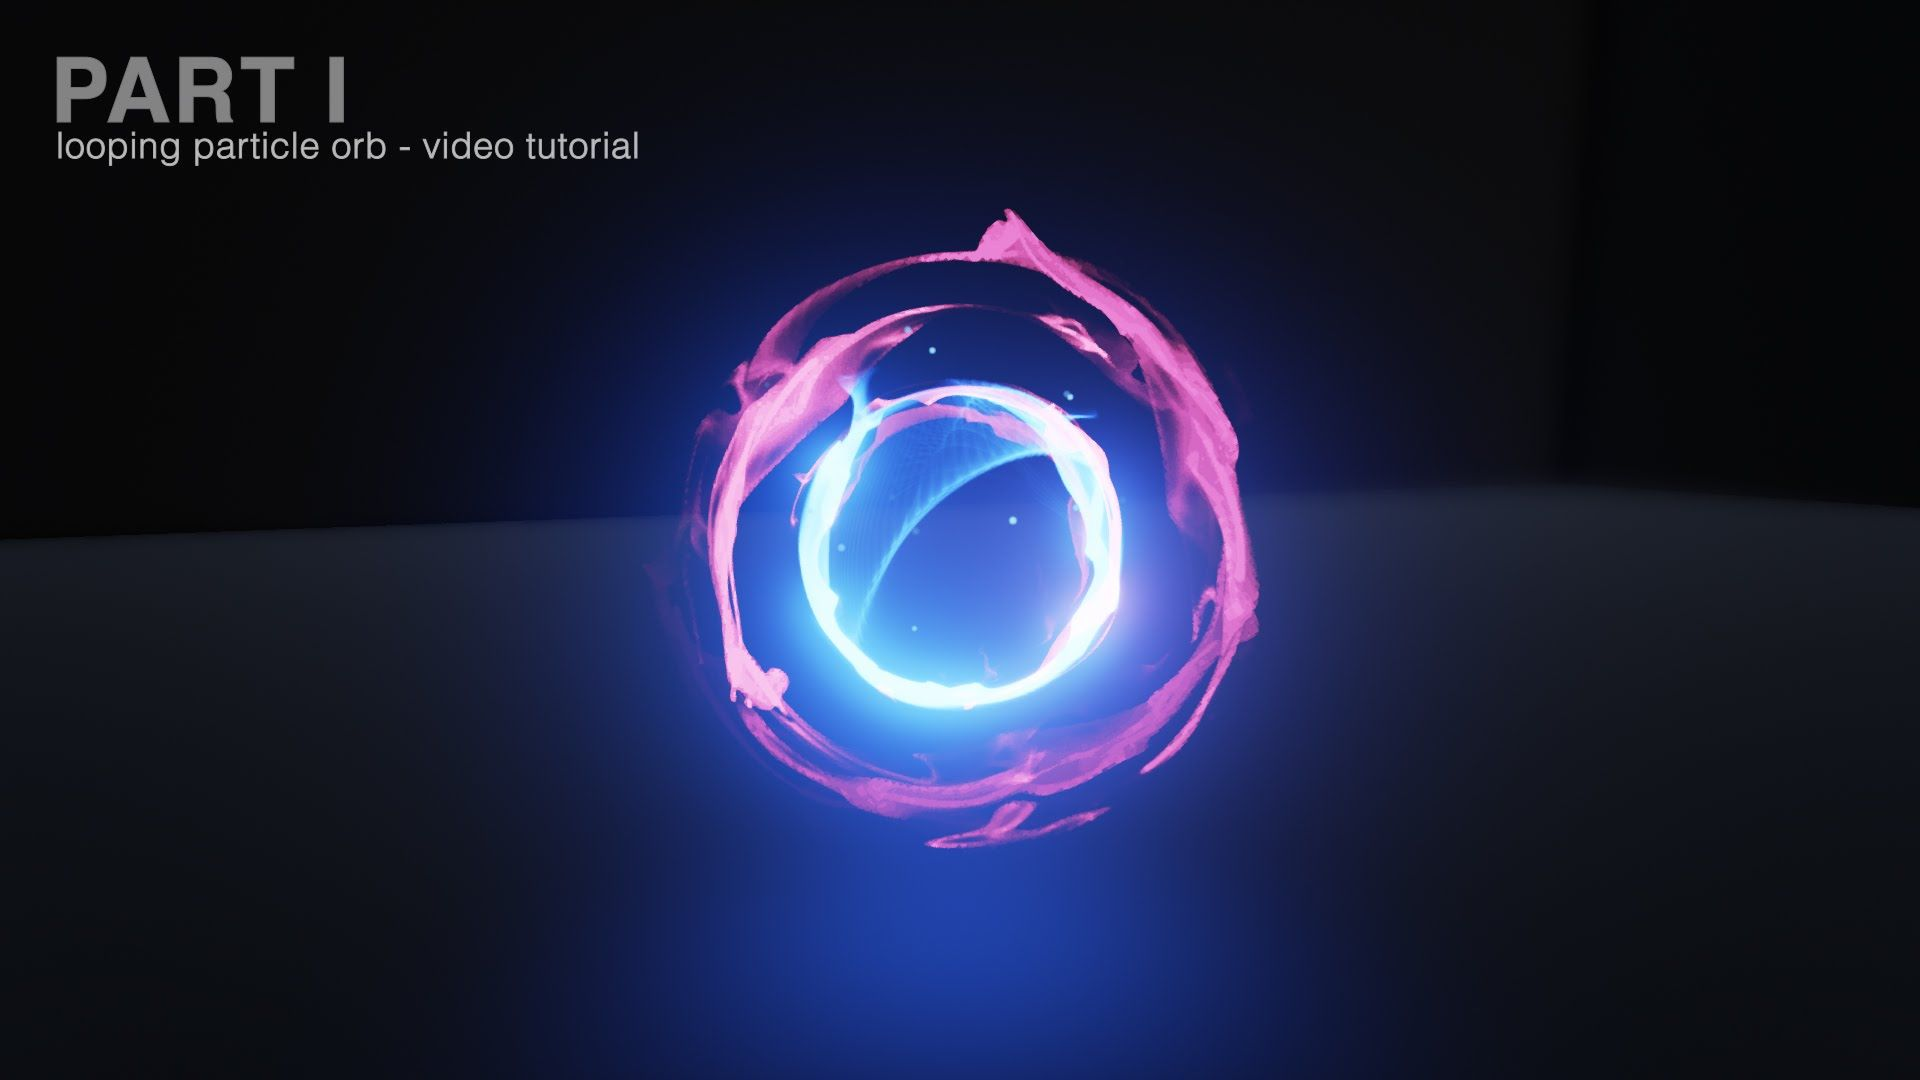 Looping Particle Orb - Video Tutorial Part 1 | Tutorial in